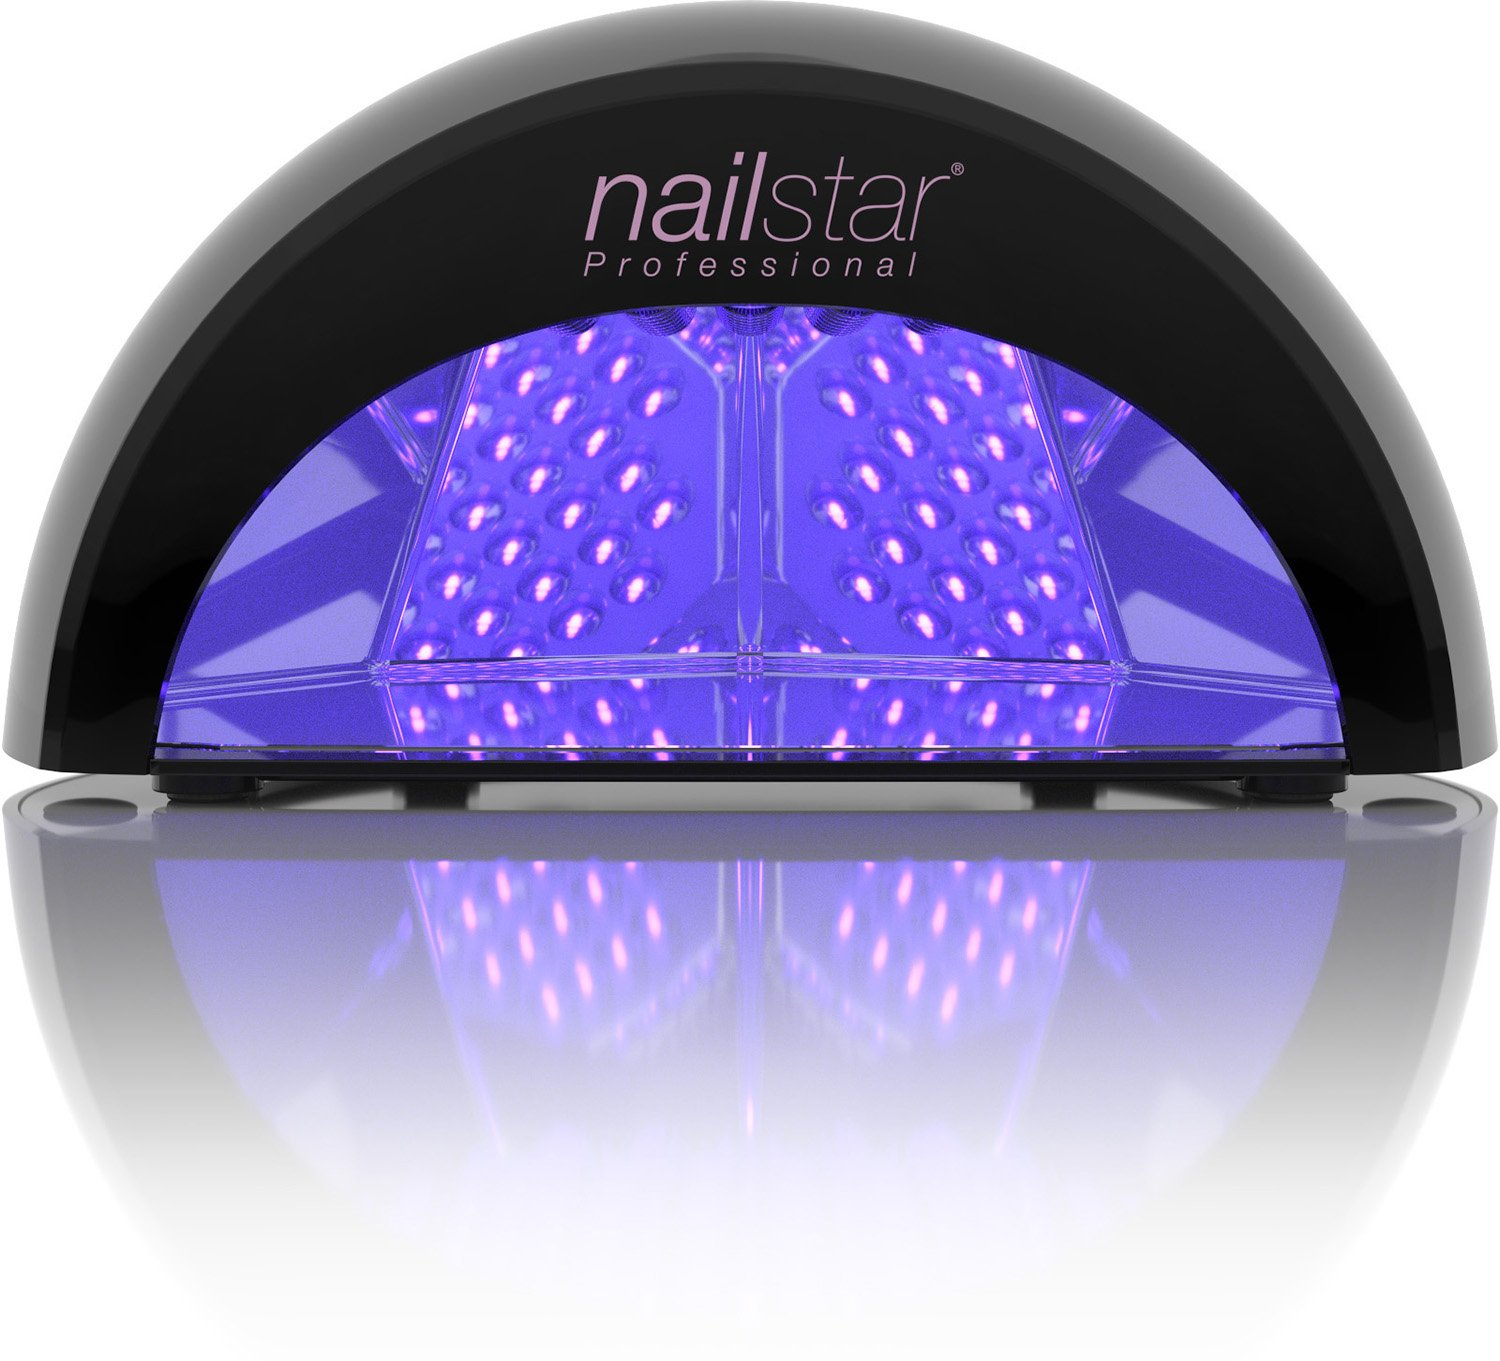 LED Nail Lamp Dryer For Gel Polish Shellac Bluesky Gelish